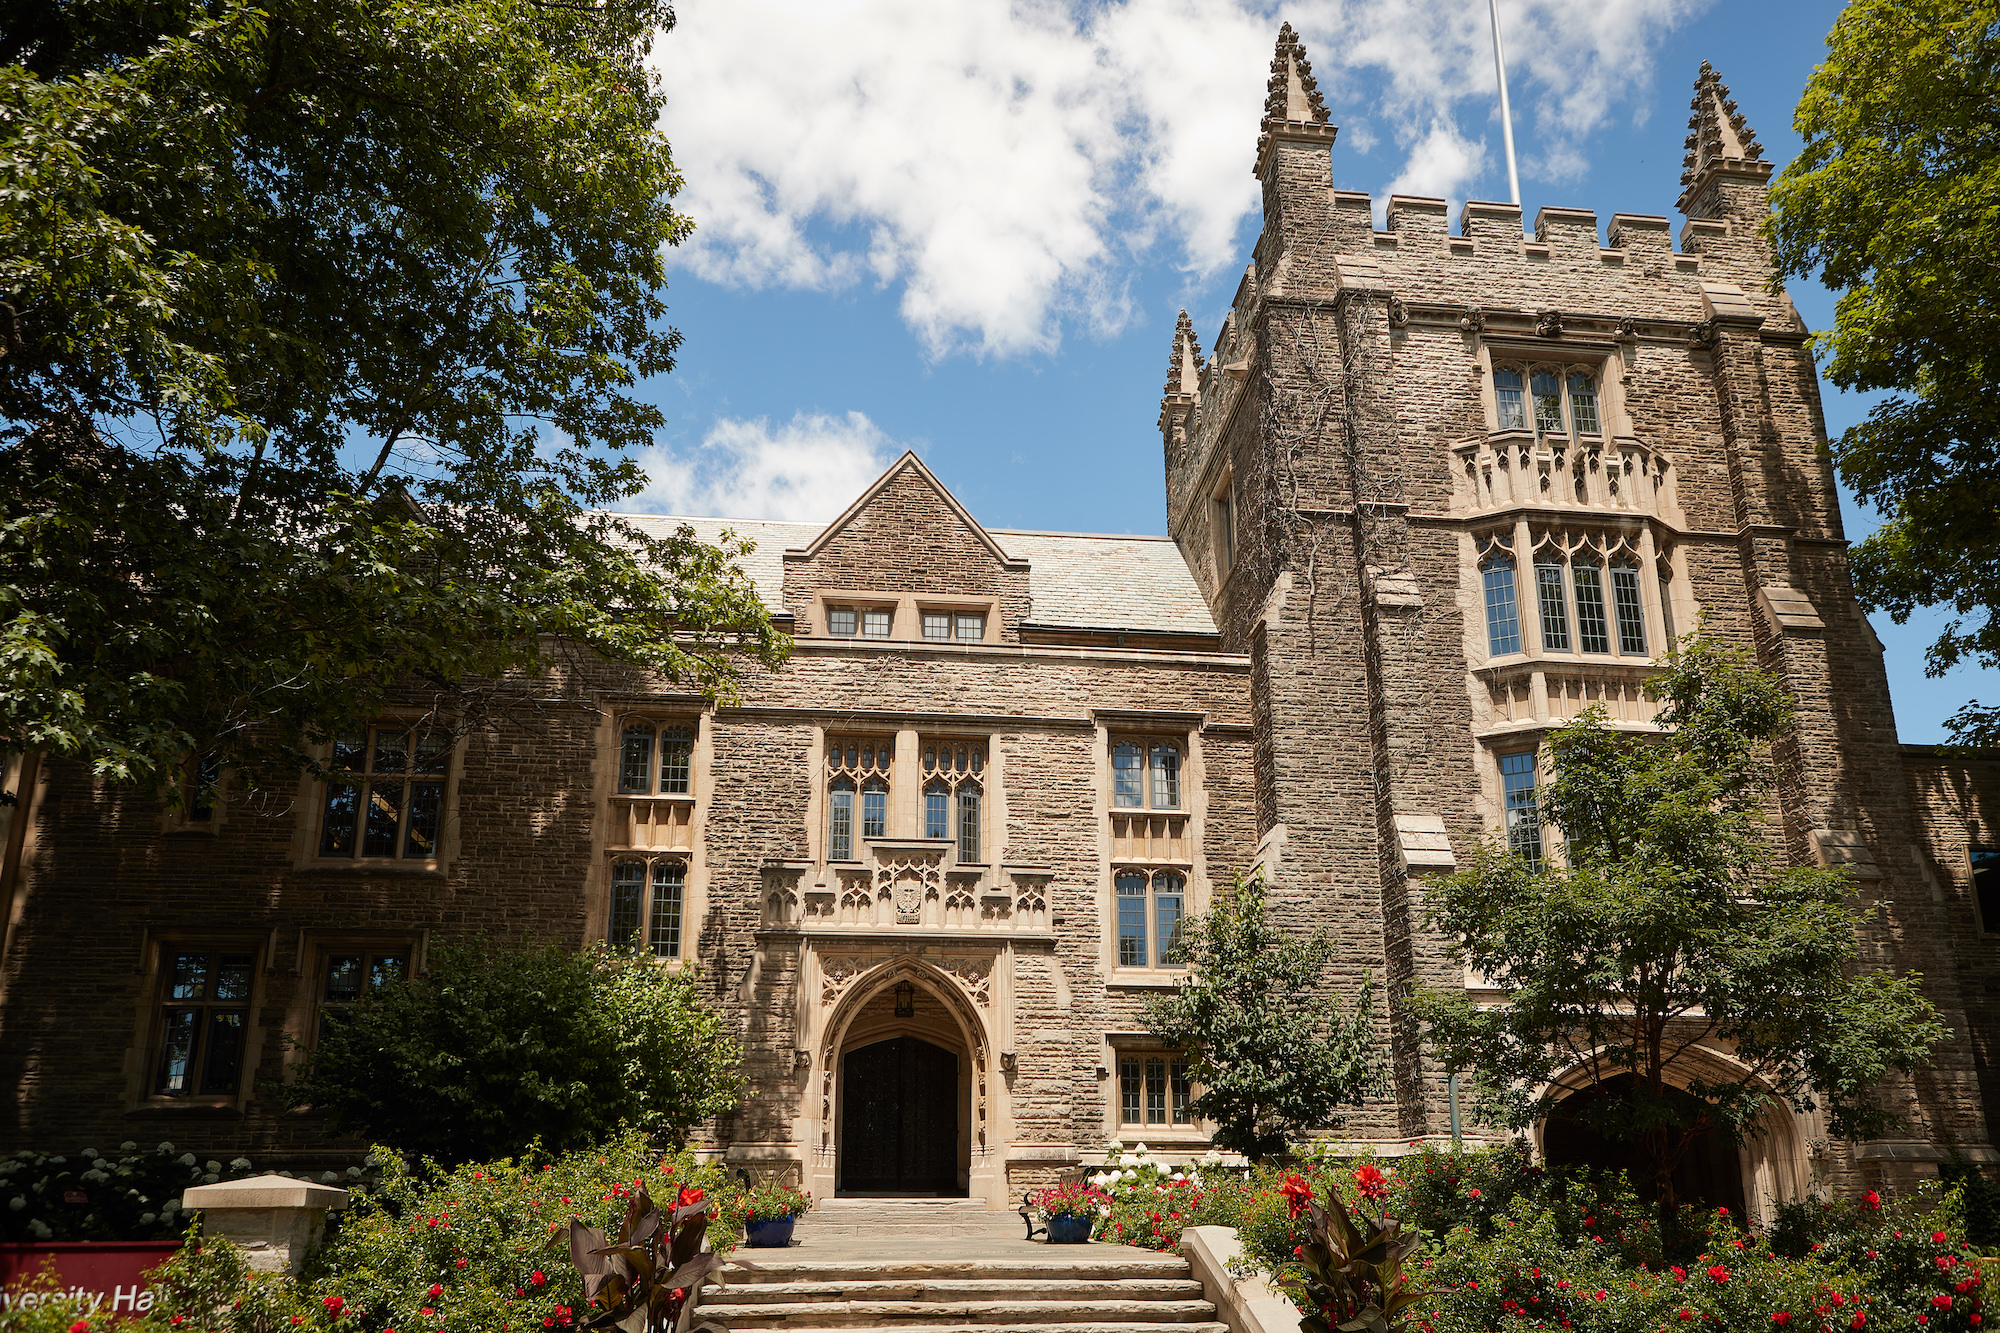 image of the exterior of university hall